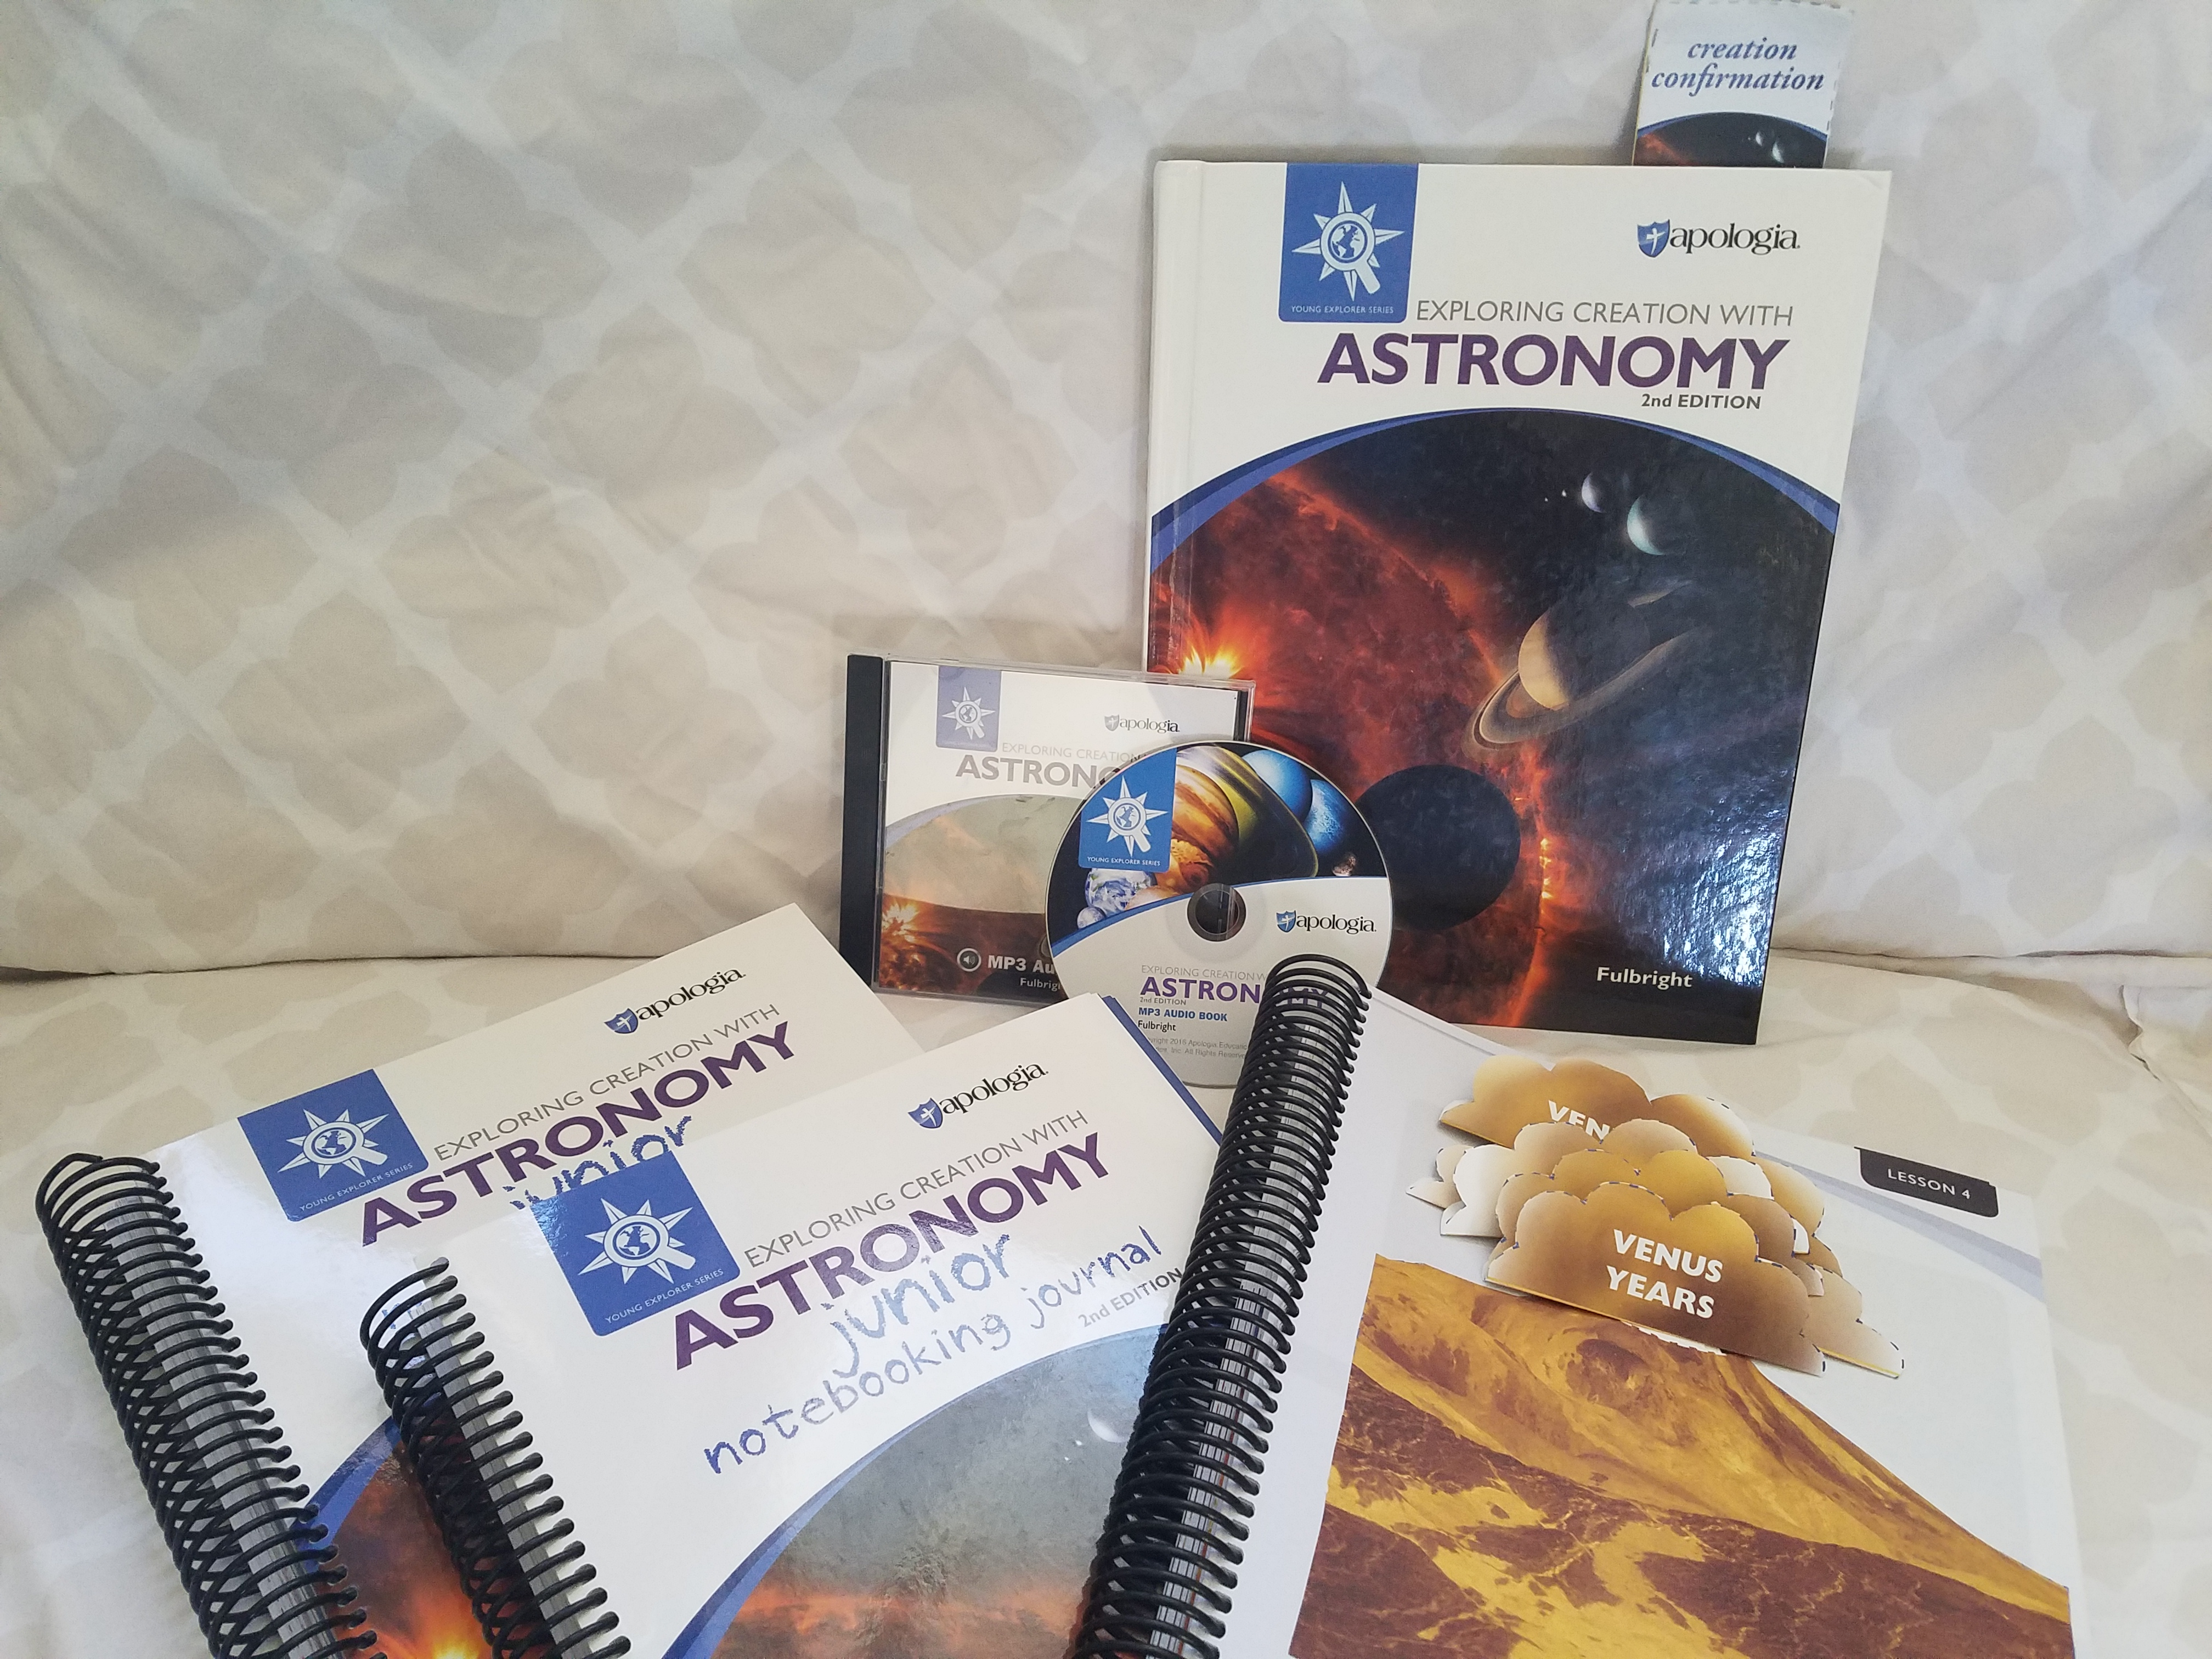 I want to go into astronomy but my A-levels are not suitable? Help:(?